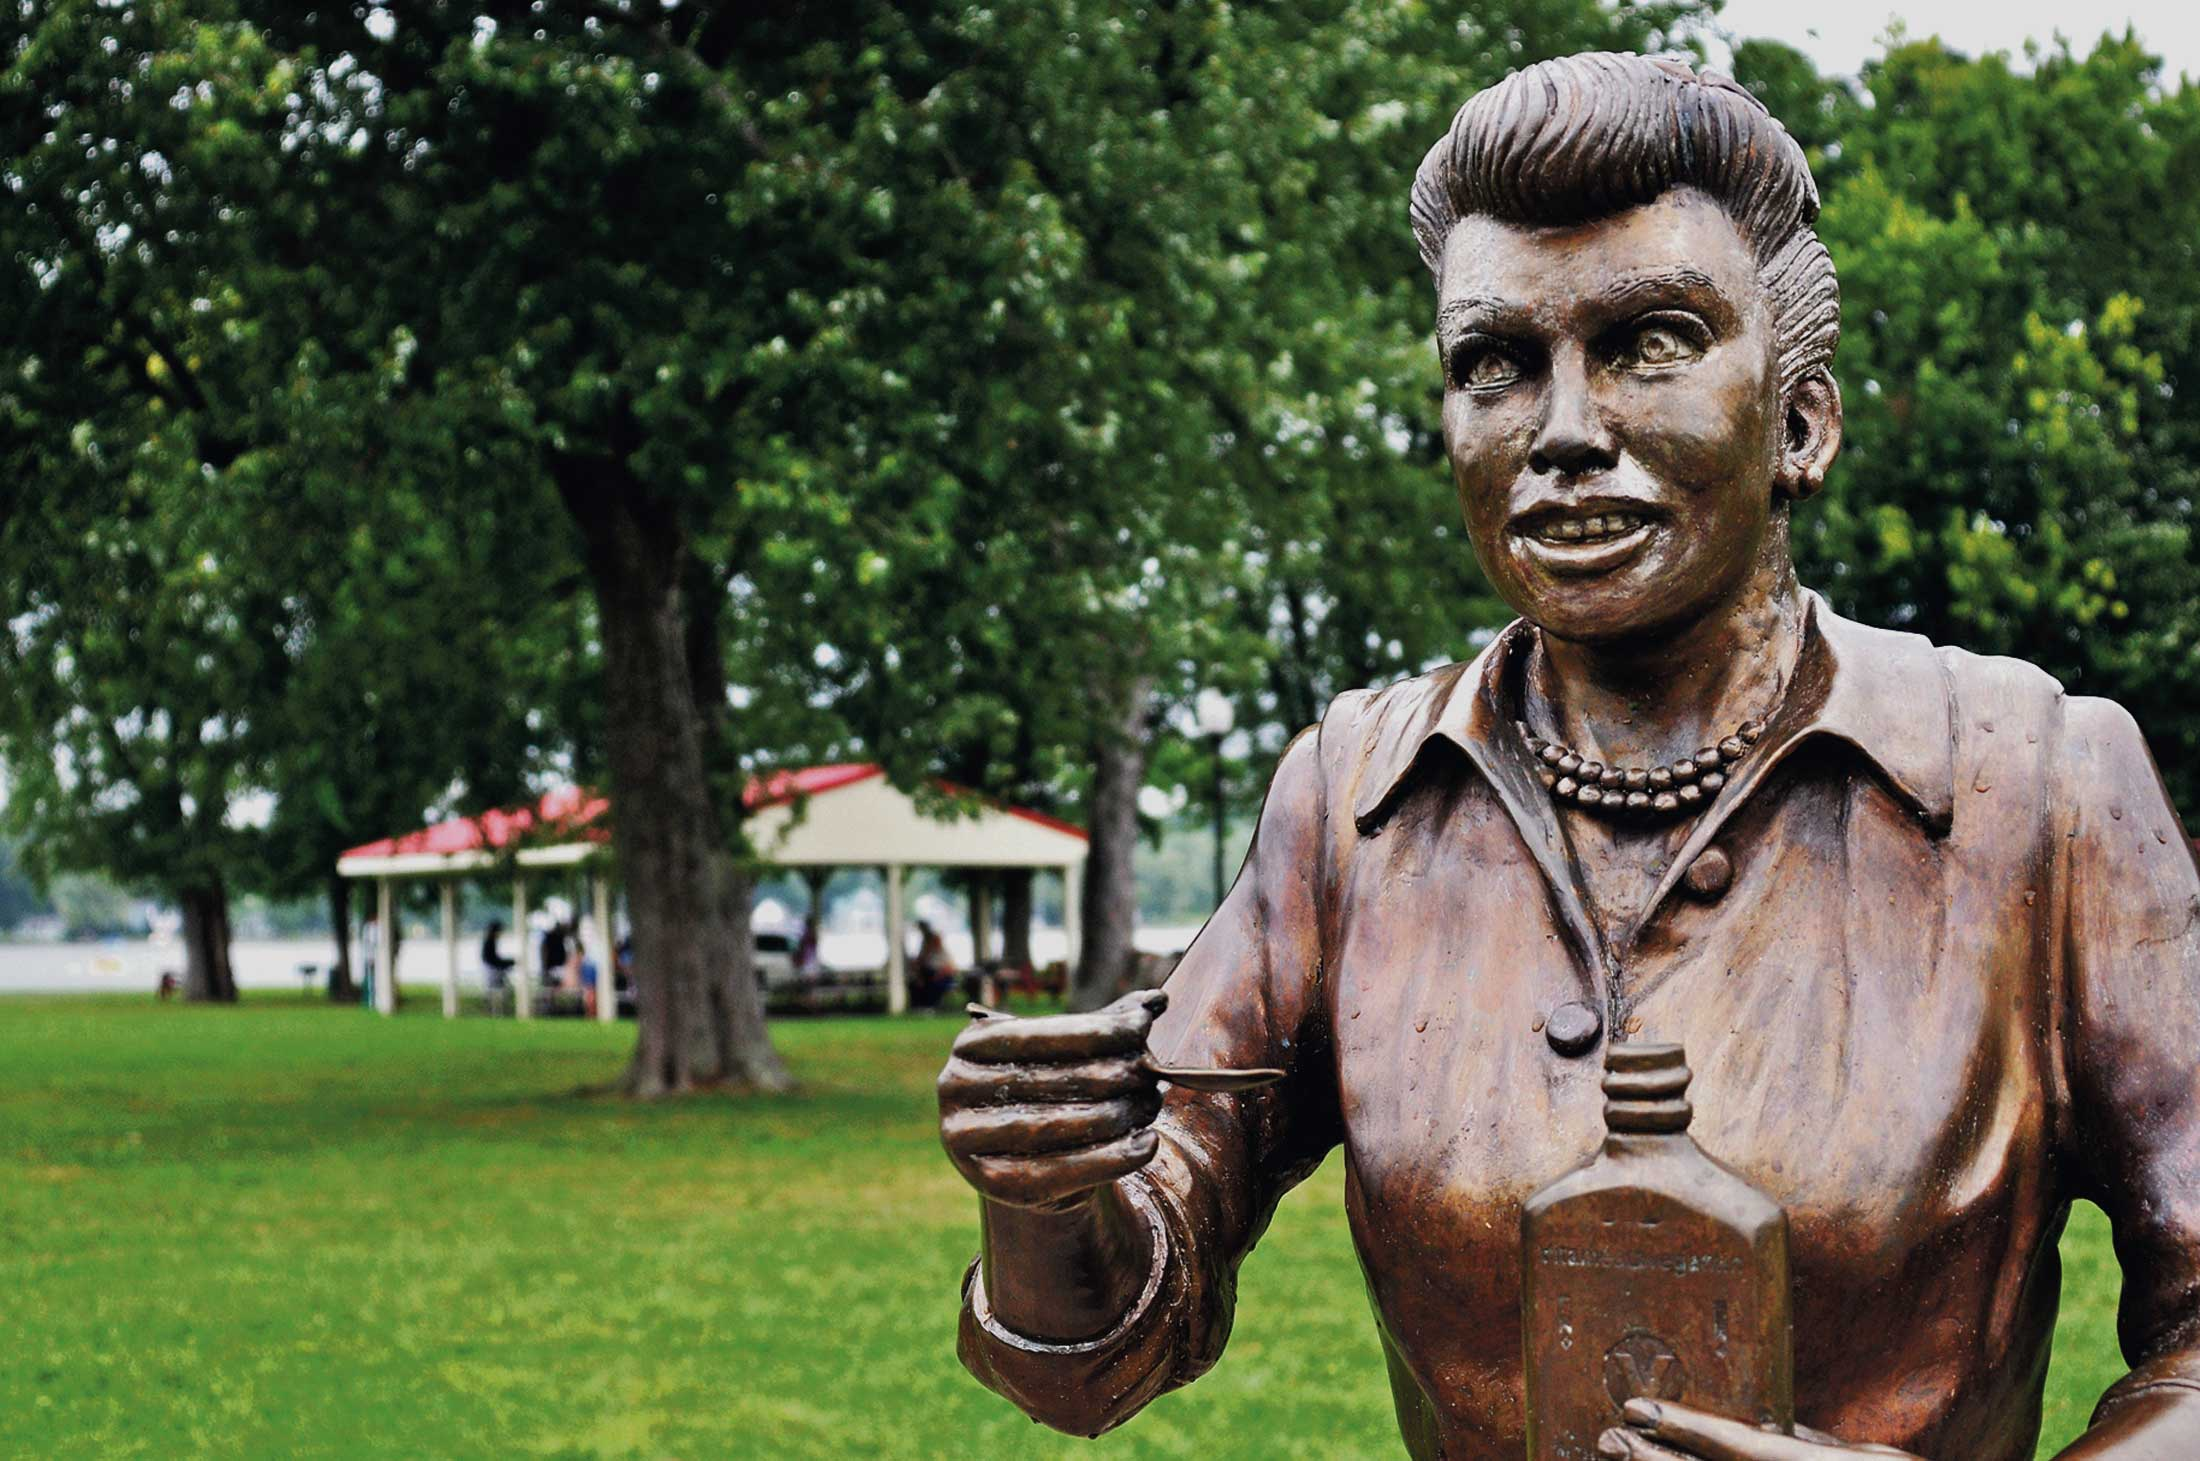 A bronze sculpture of Lucille Ball is displayed in Lucille Ball Memorial Park in the village of Celoron, N.Y., in her hometown.